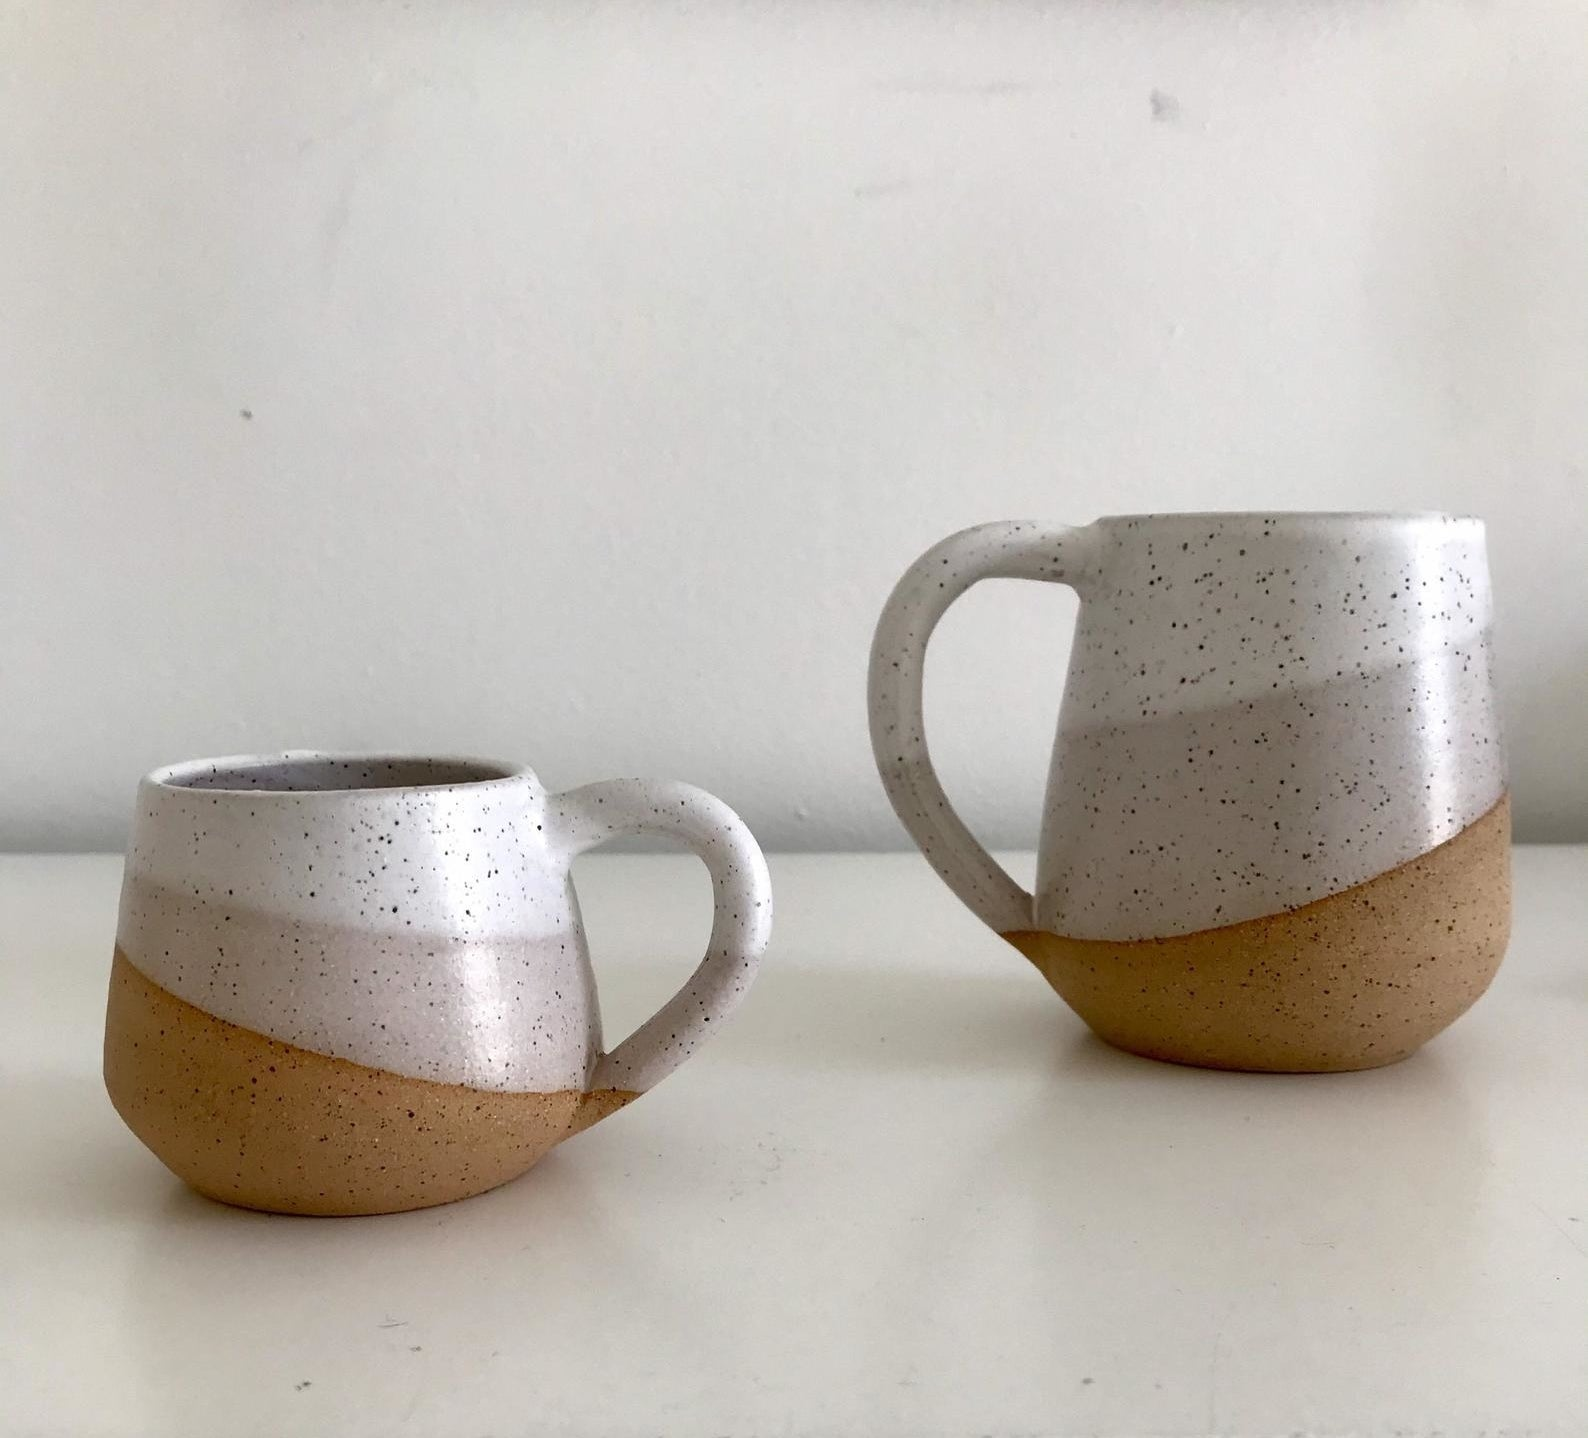 a speckled and white ceramic espresso cup and coffee mug